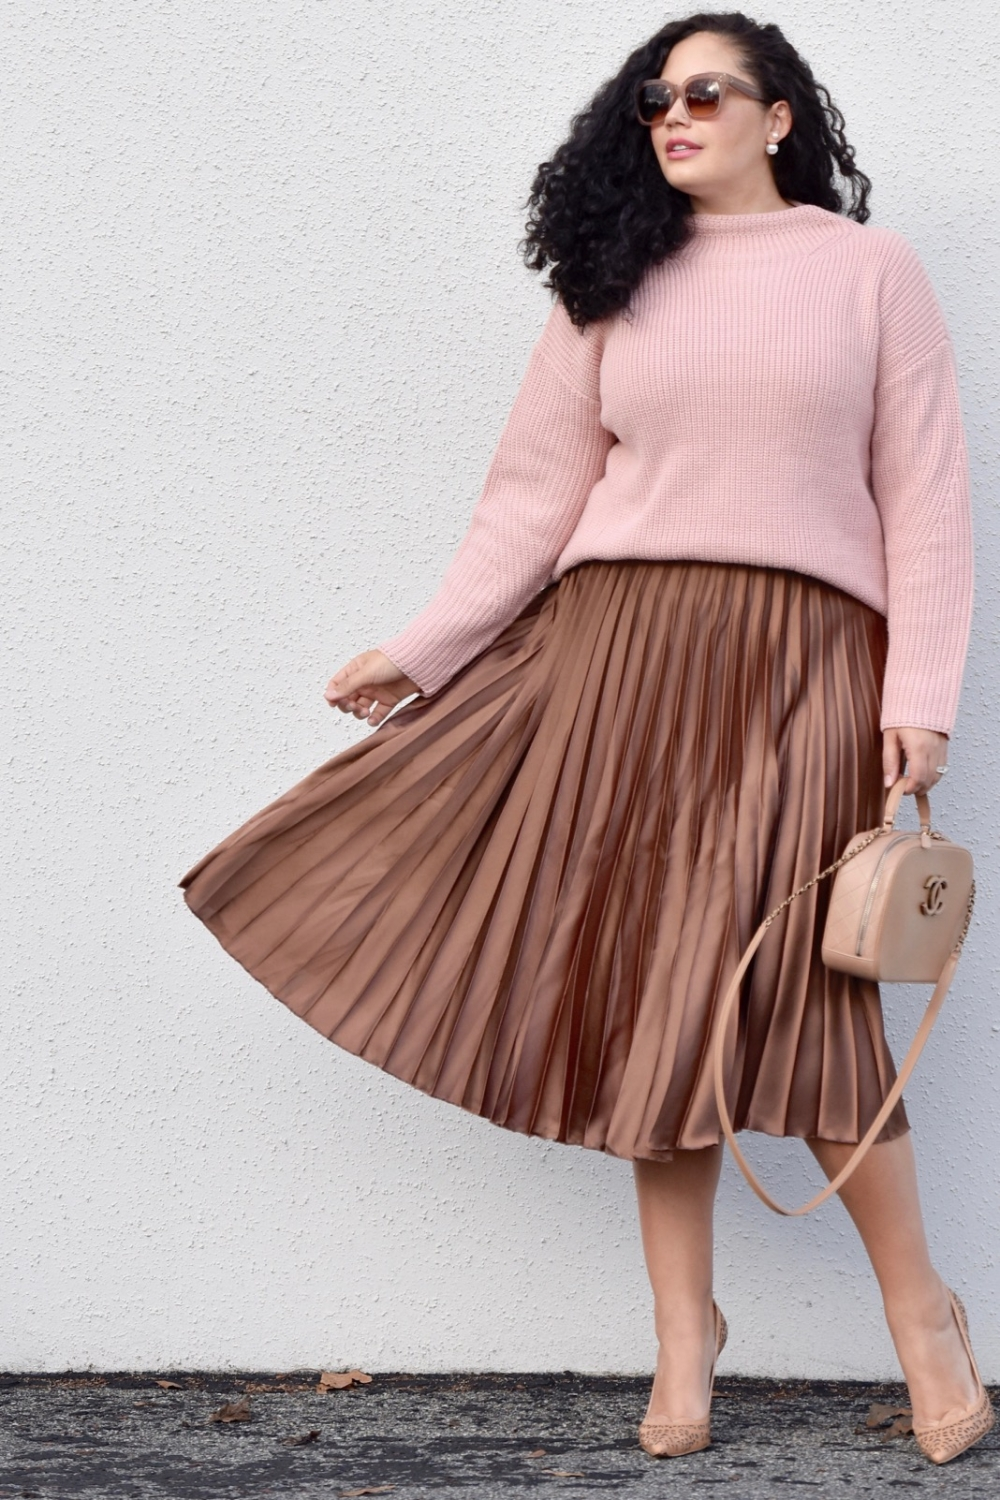 Girl With Curves blogger Tanesha Awasthi wears a Satin Skirt and high neck sweater.